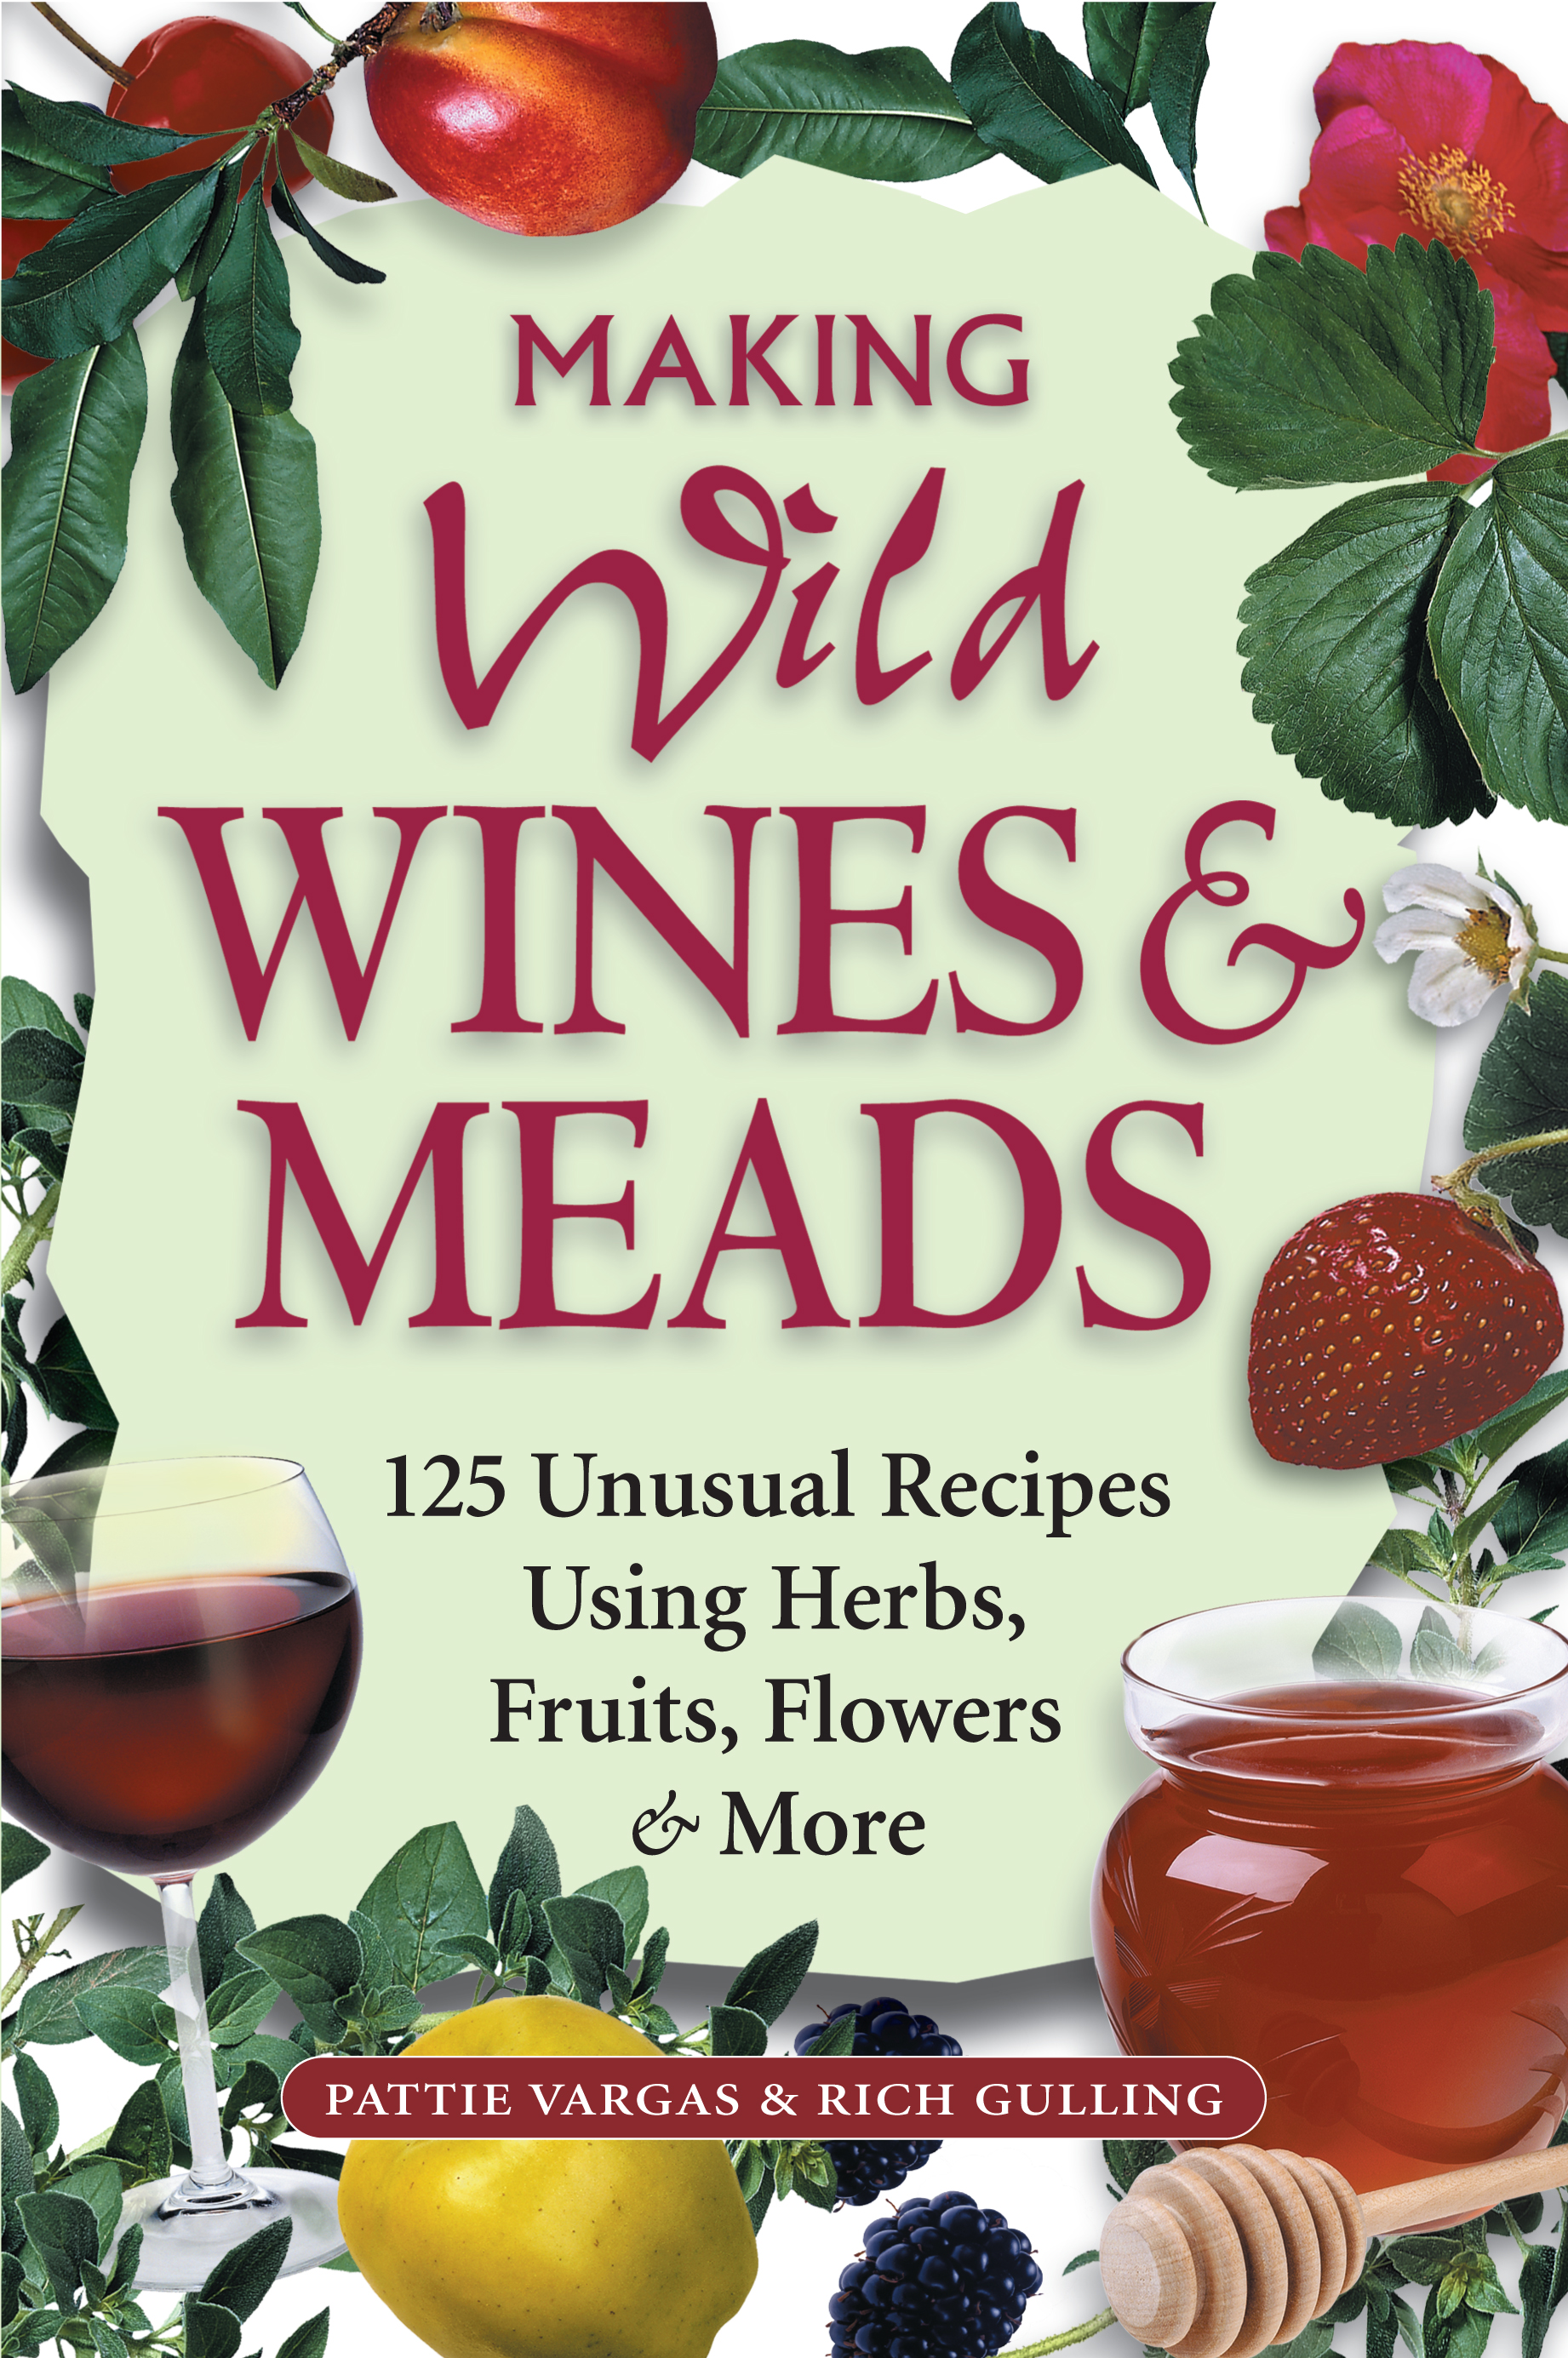 Making Wild Wines & Meads 125 Unusual Recipes Using Herbs, Fruits, Flowers & More - Rich Gulling